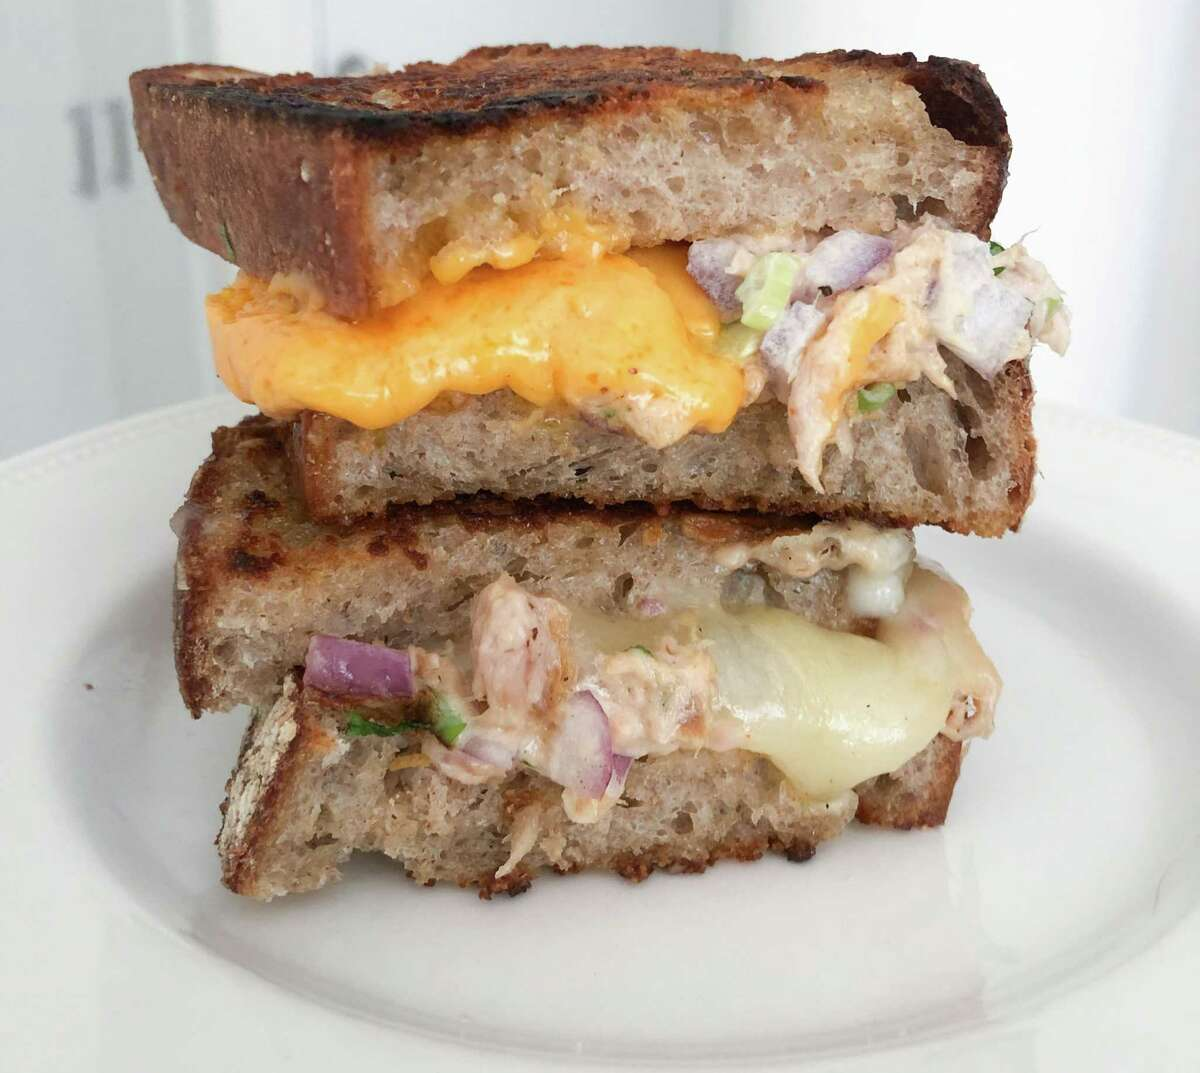 Tuna melt two ways: With Cheddar and with Jalapeño Jack, which the author preferred.